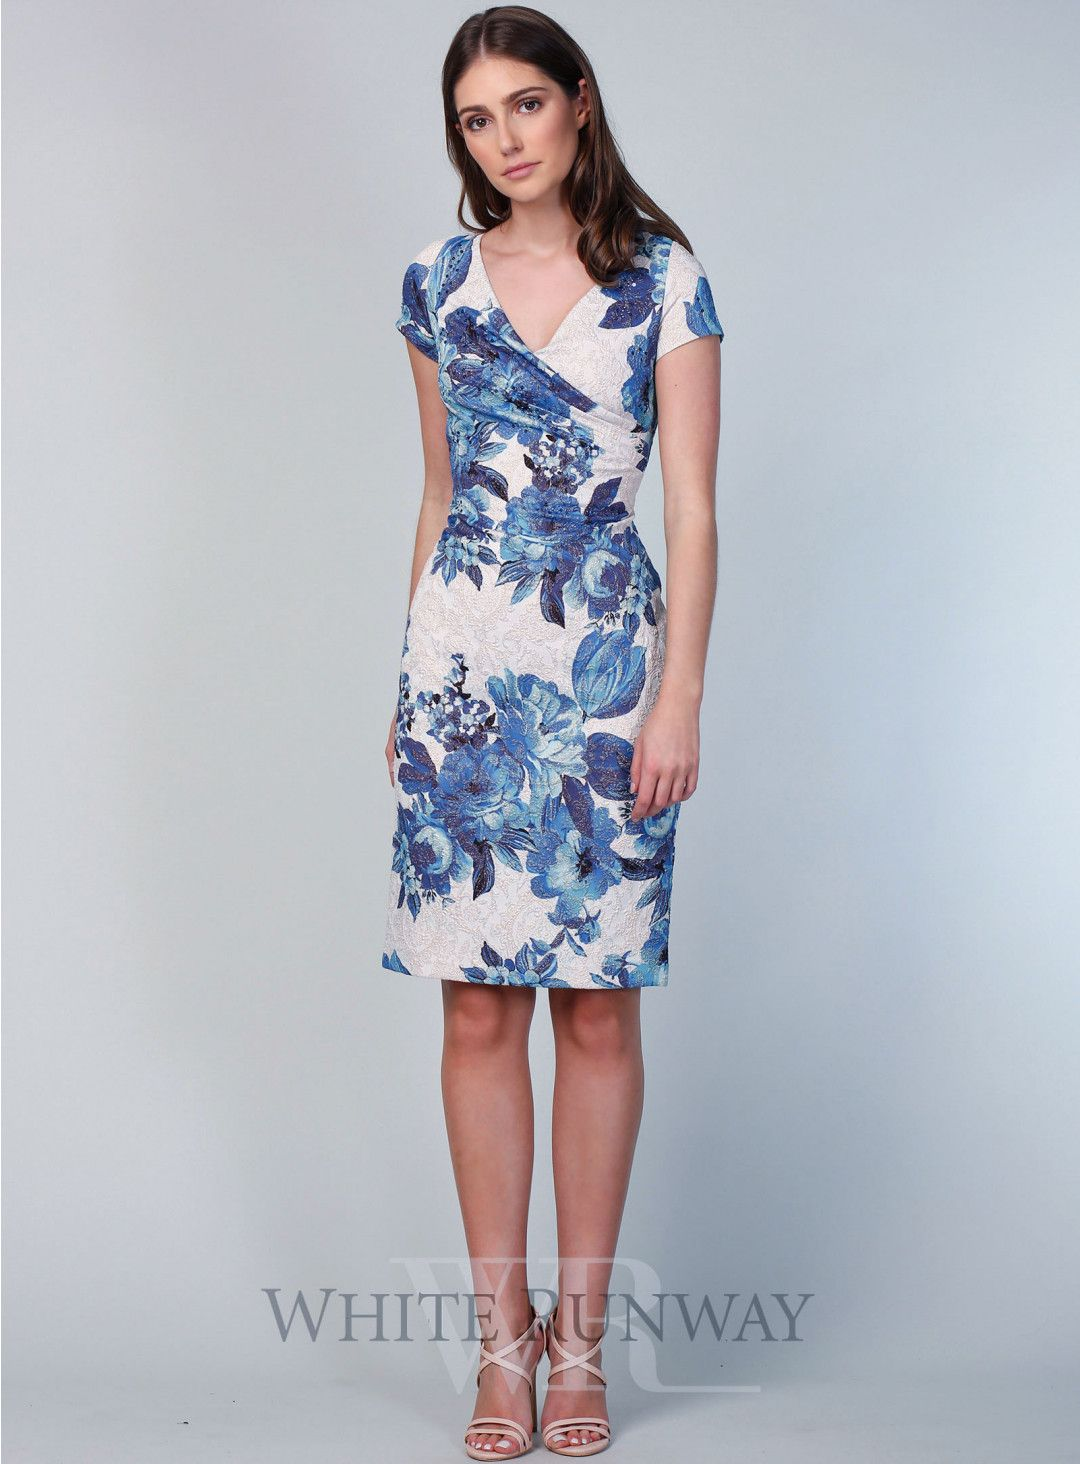 Sheri floral dress a chic cocktail length dress by adrianna papell sheri floral dress a chic cocktail length dress by adrianna papell a gorgeous floral izmirmasajfo